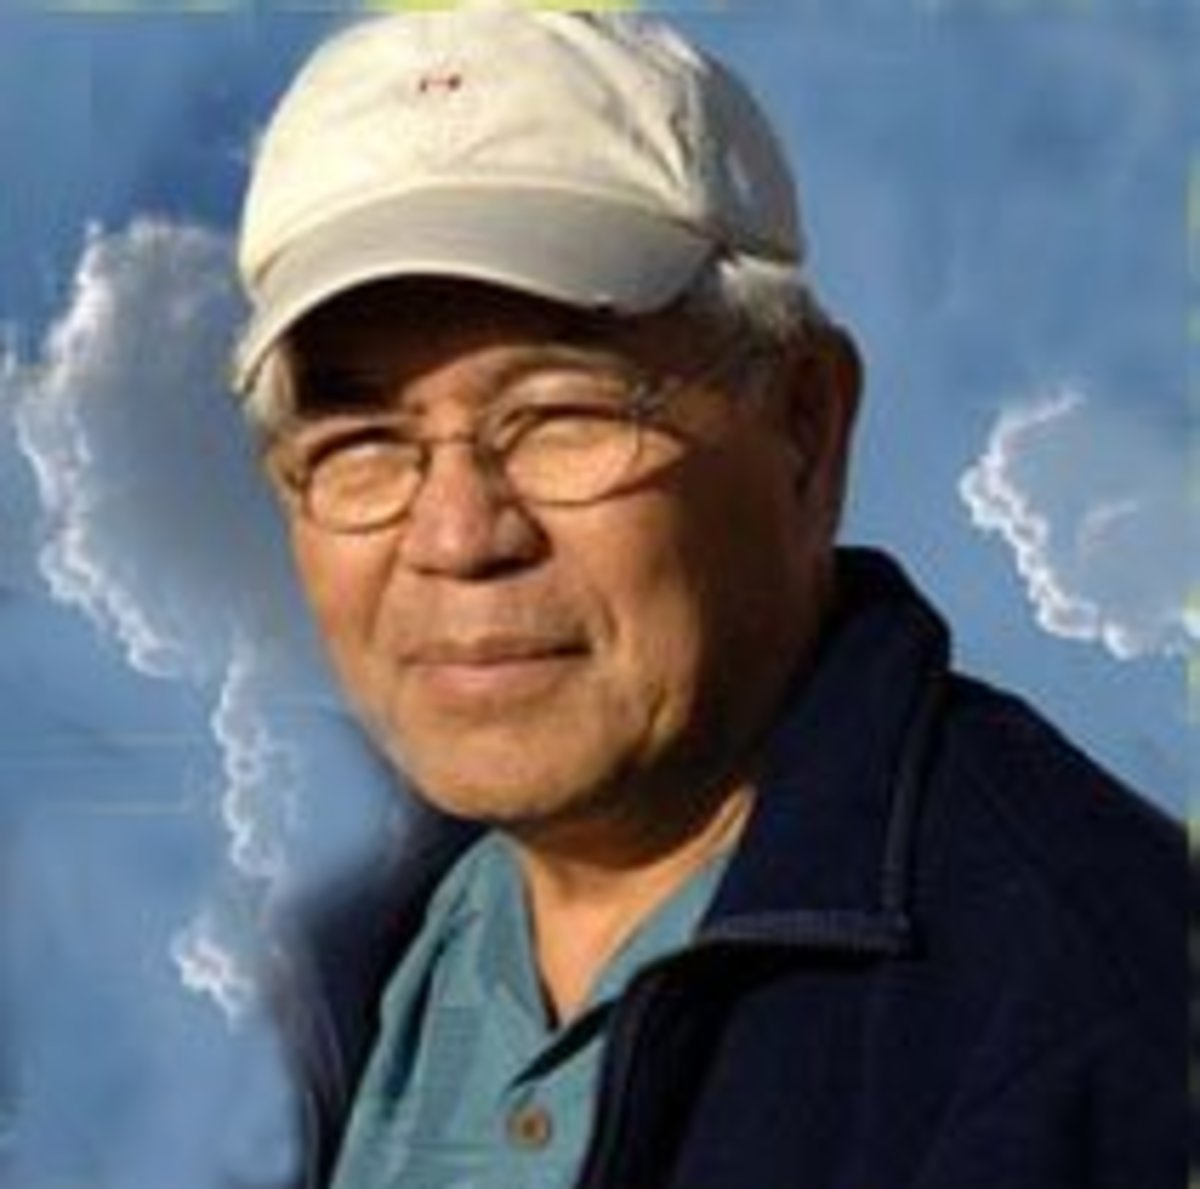 How Dr. Hew Len healed a ward of mentally ill criminals with Ho'oponopono